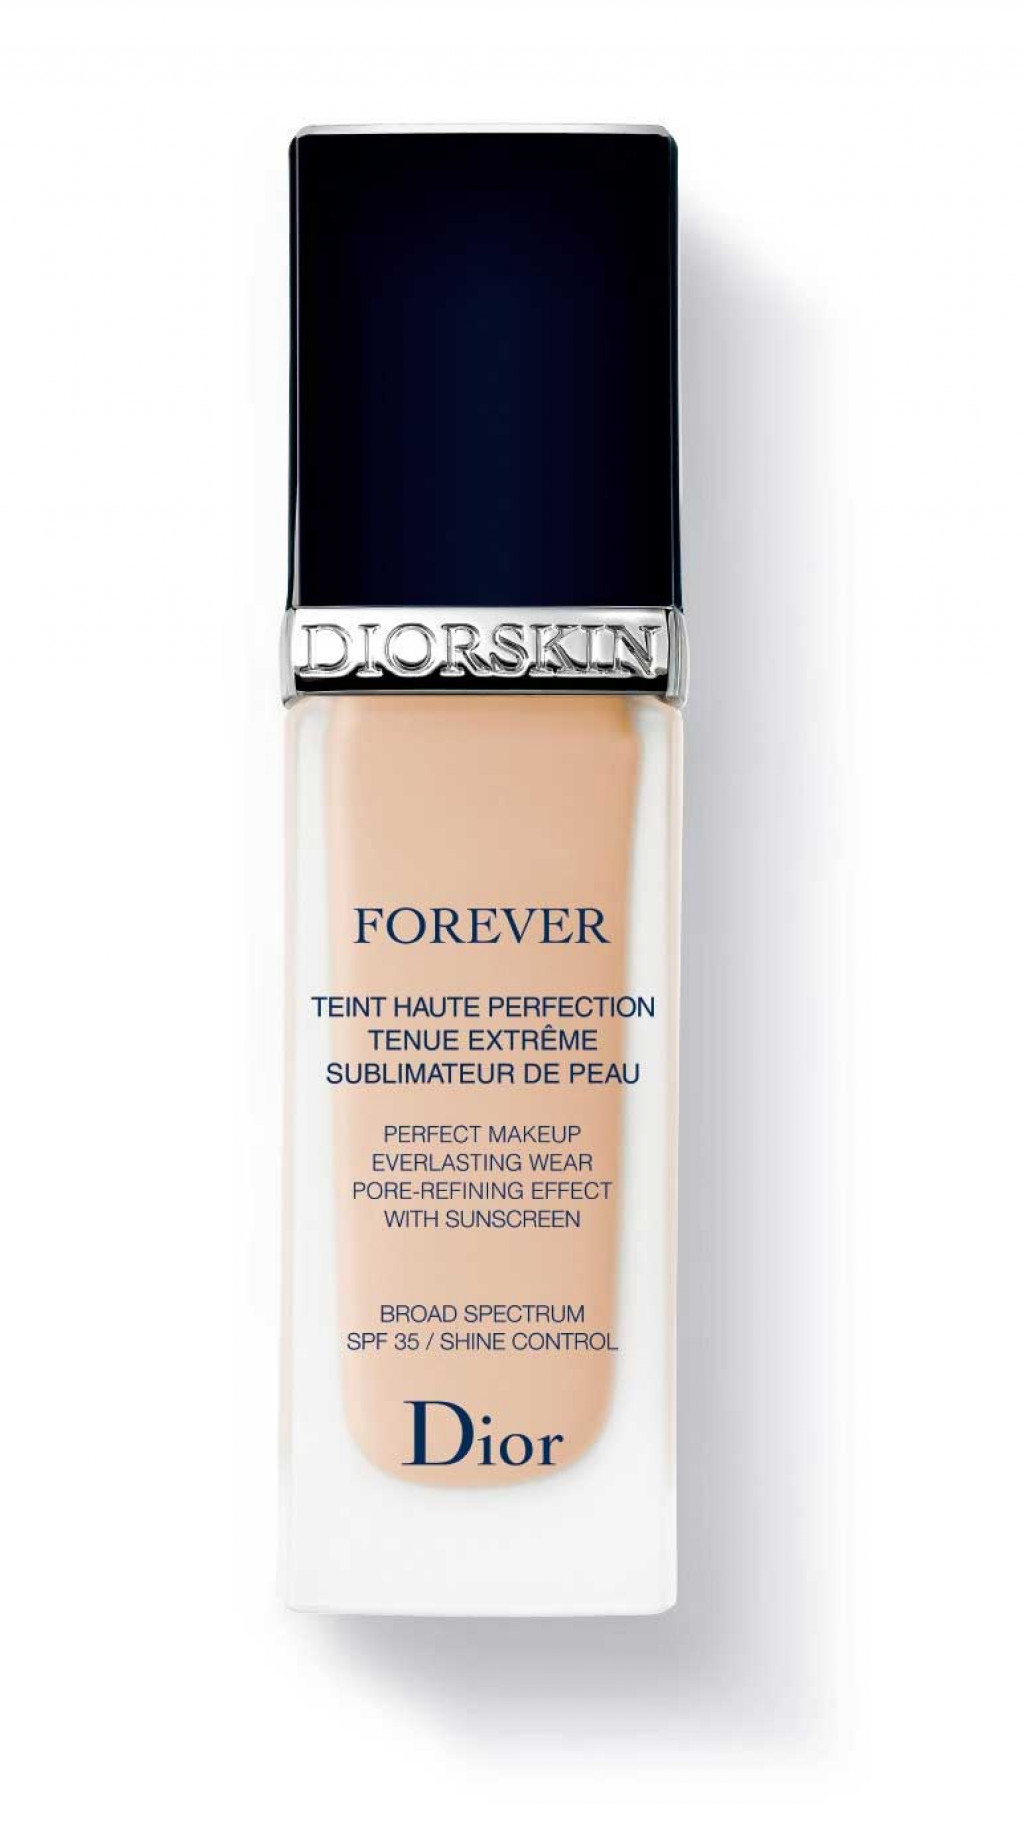 dior diorskin forever undercover foundation for spring 2018 news beautyalmanac. Black Bedroom Furniture Sets. Home Design Ideas